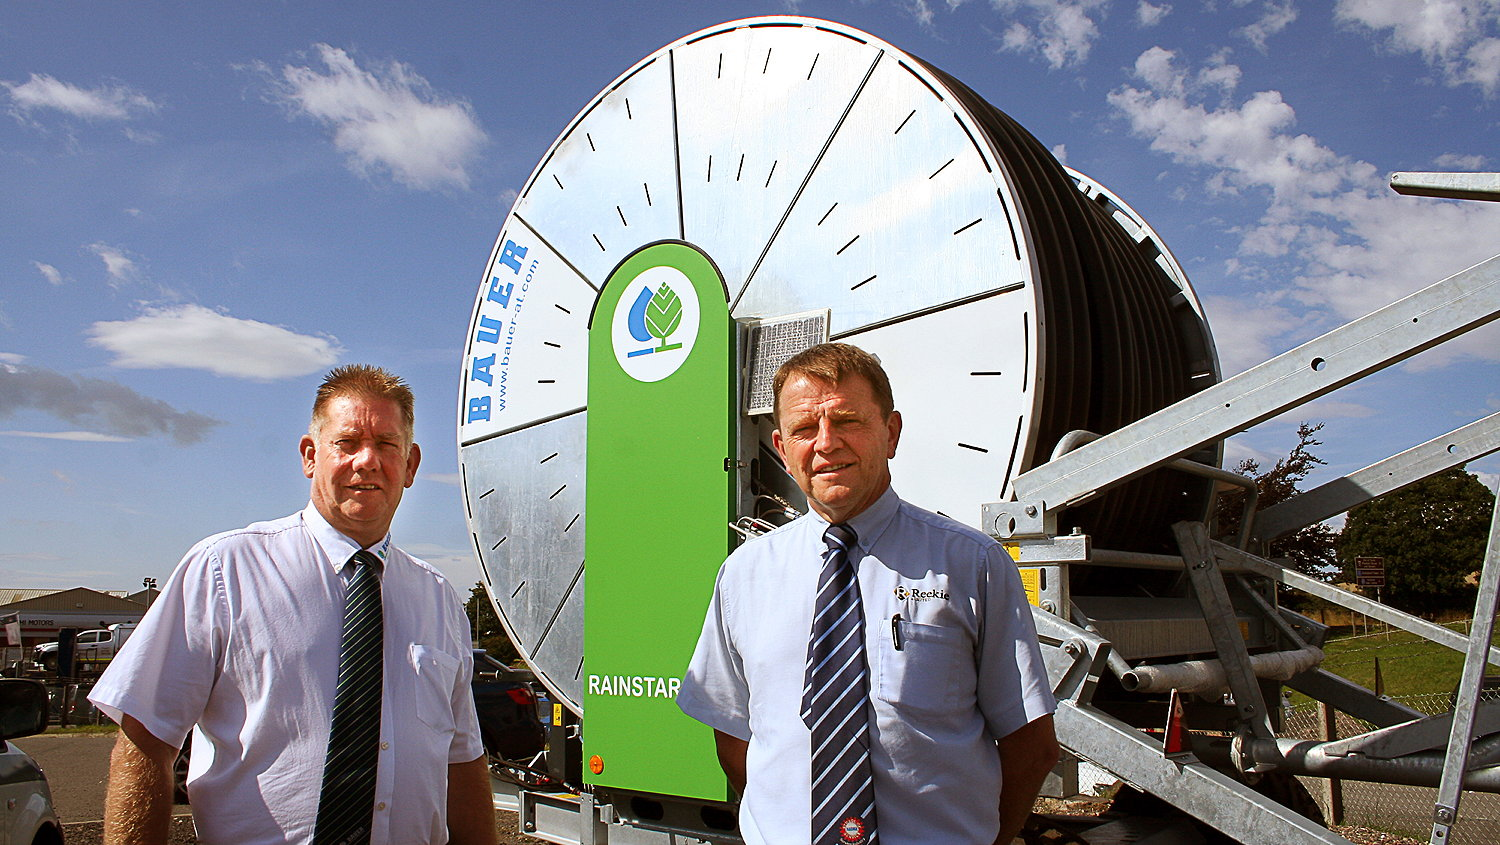 Rob Jackson (left) of Bauer UK and Ireland is pictured with Reekie's general manager at Cupar and Perth, Sam Mercer